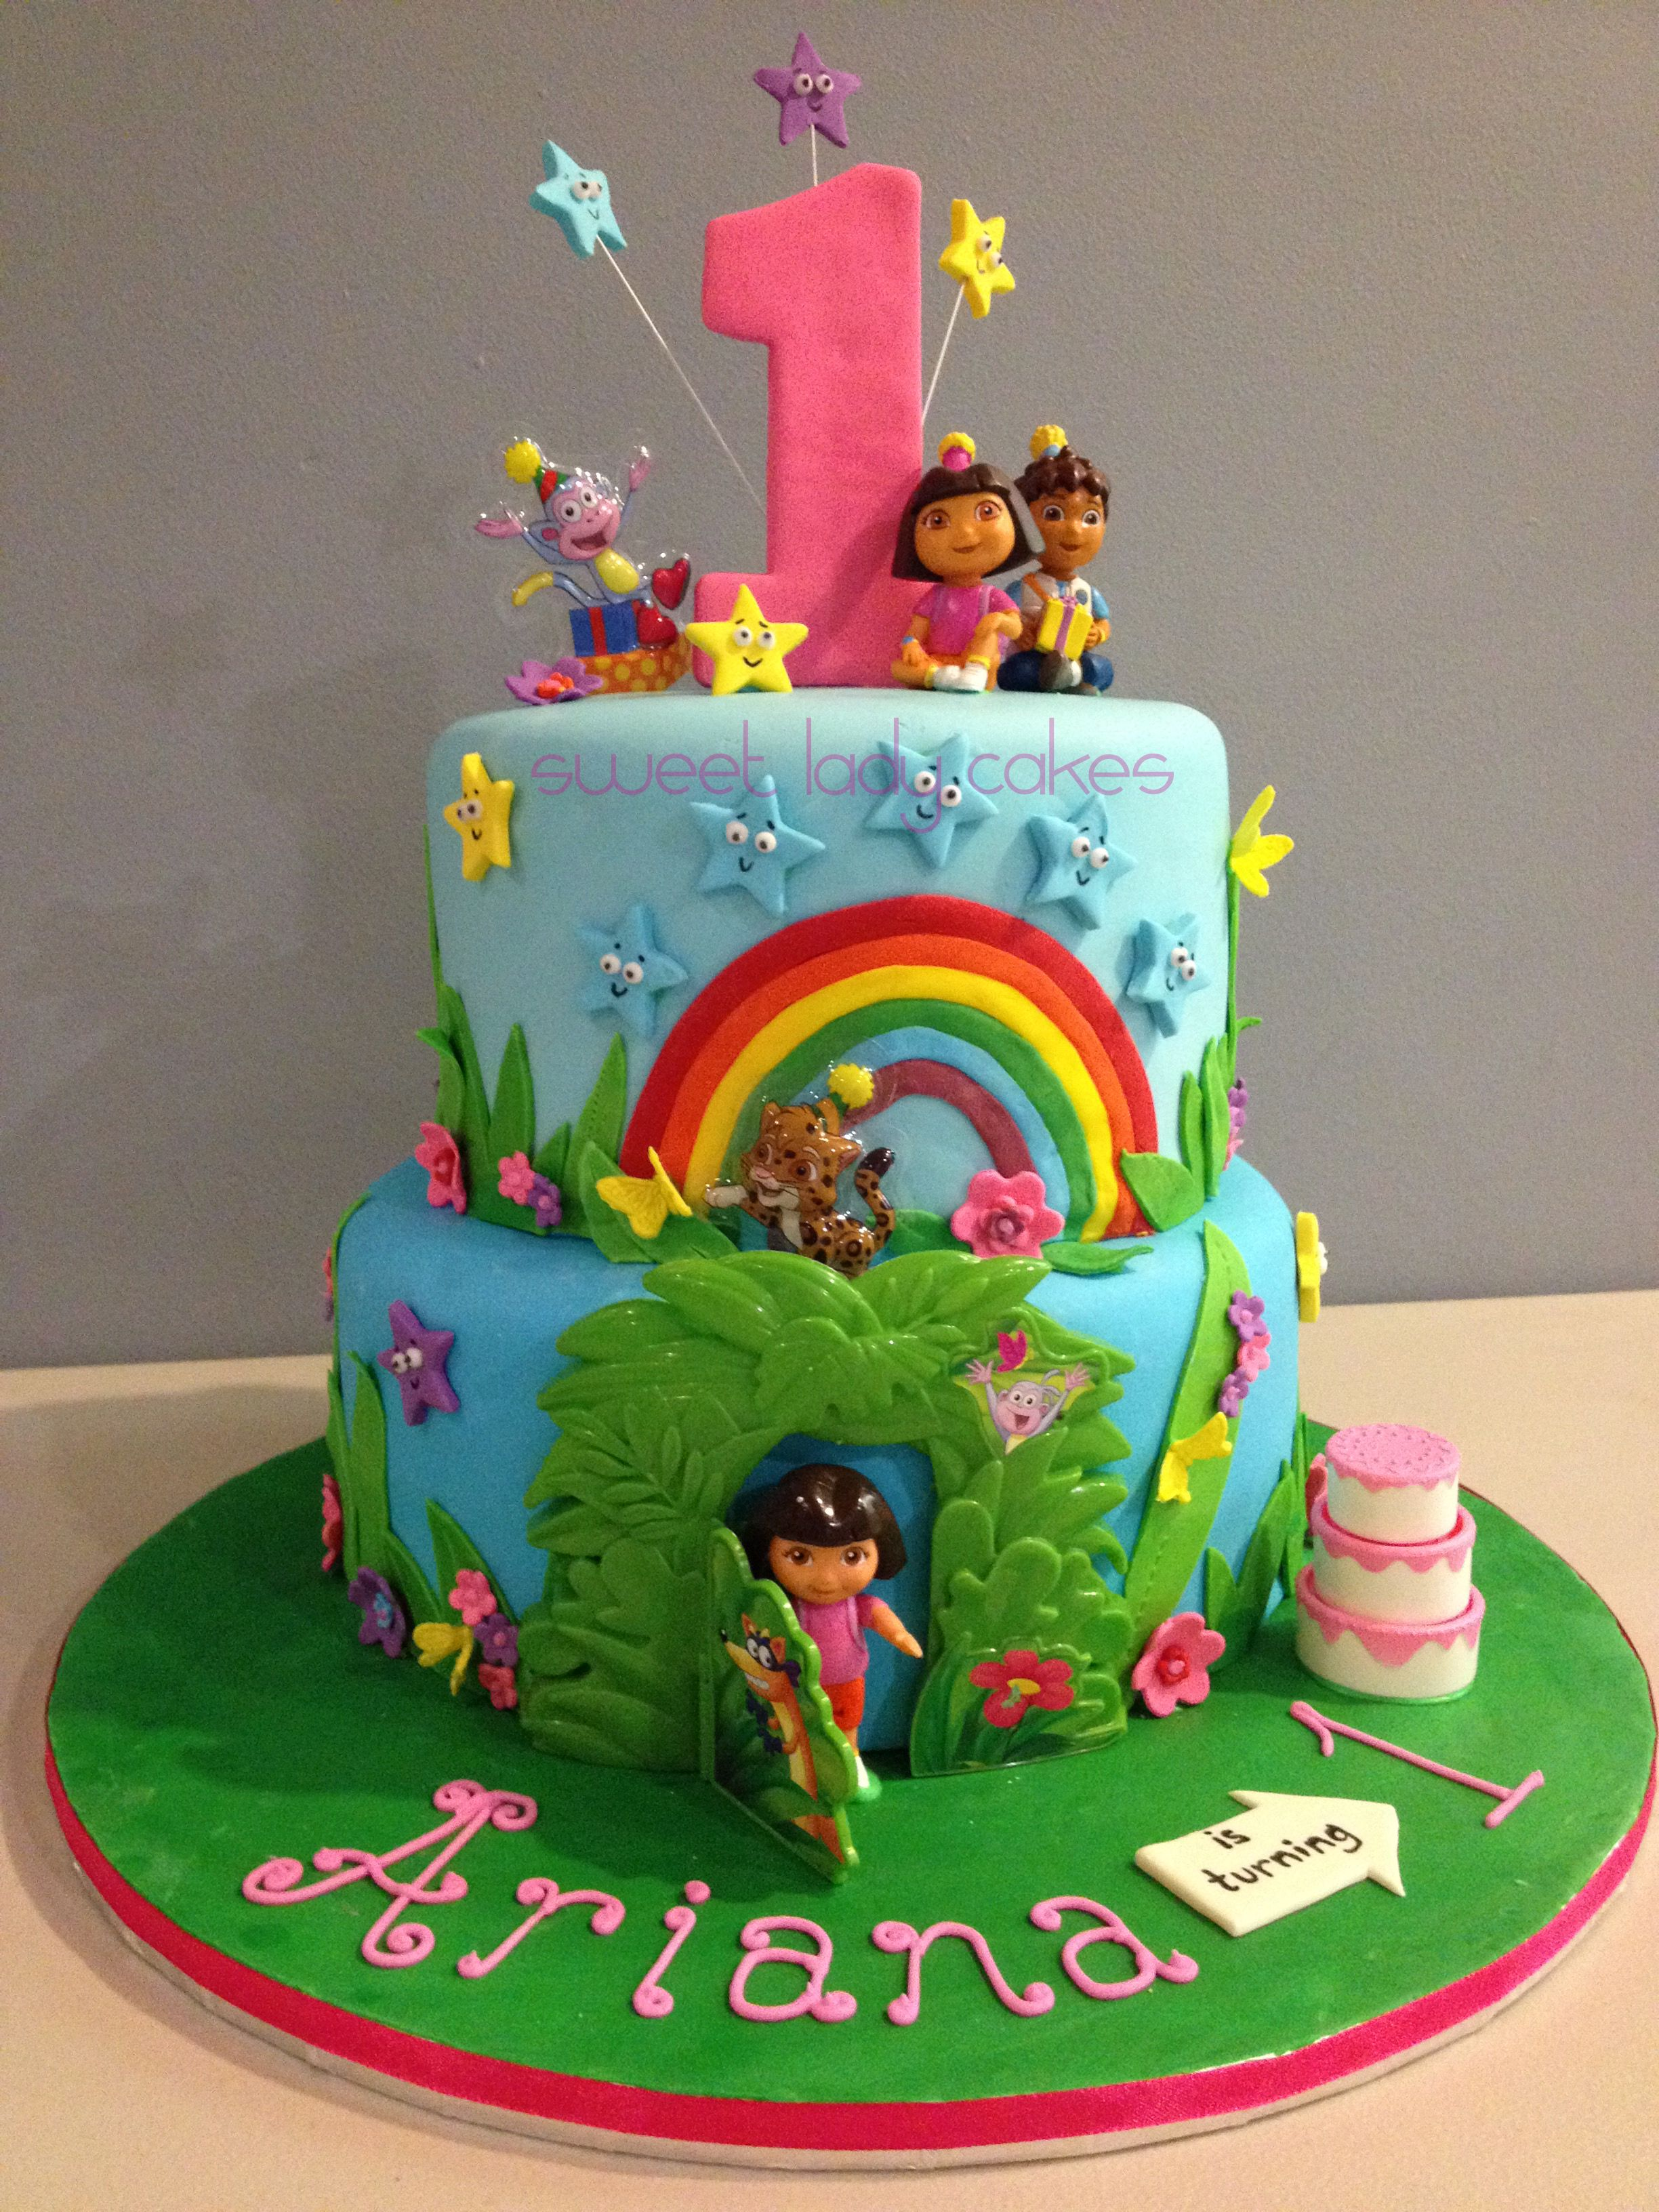 Phenomenal Best 25 Dora Cake Ideas On Pinterest Dora Birthday Cake Dora Best Personalised Birthday Cards Veneteletsinfo